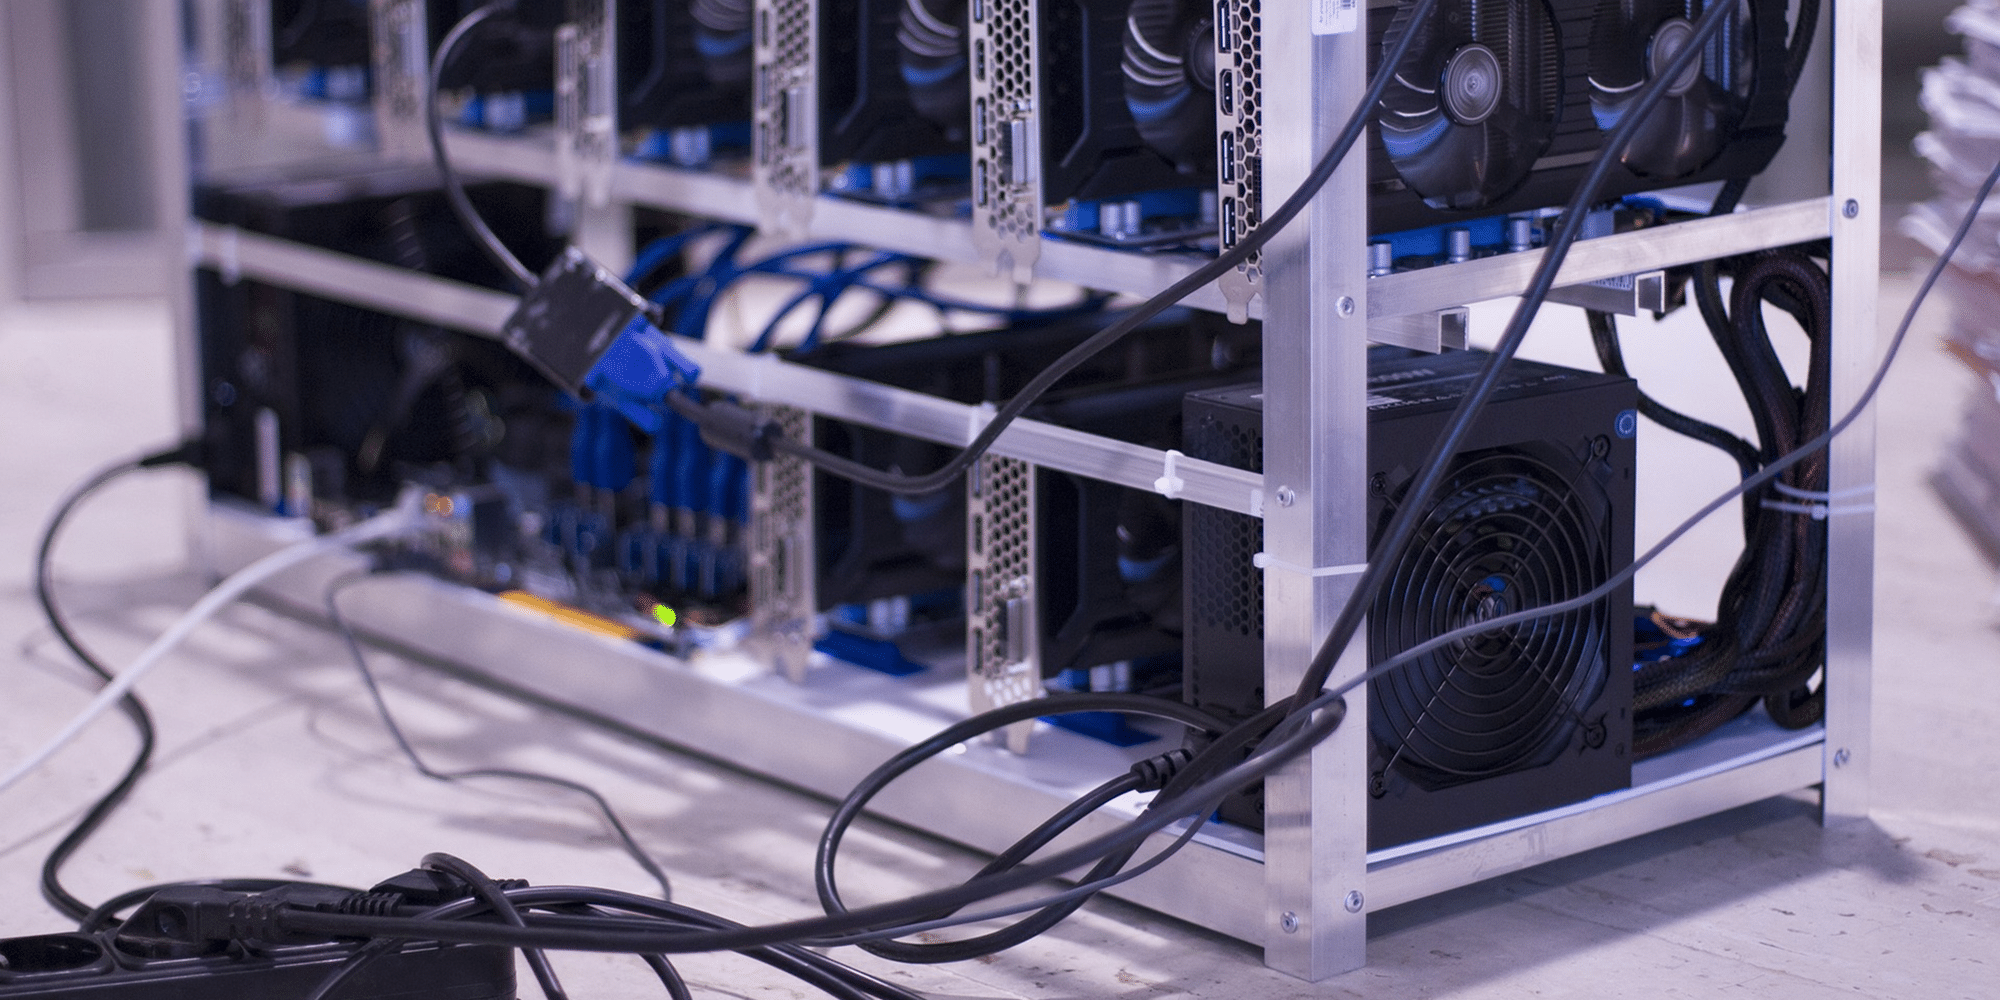 Bitcoin mining company, Bitmain would benefit from an IPO